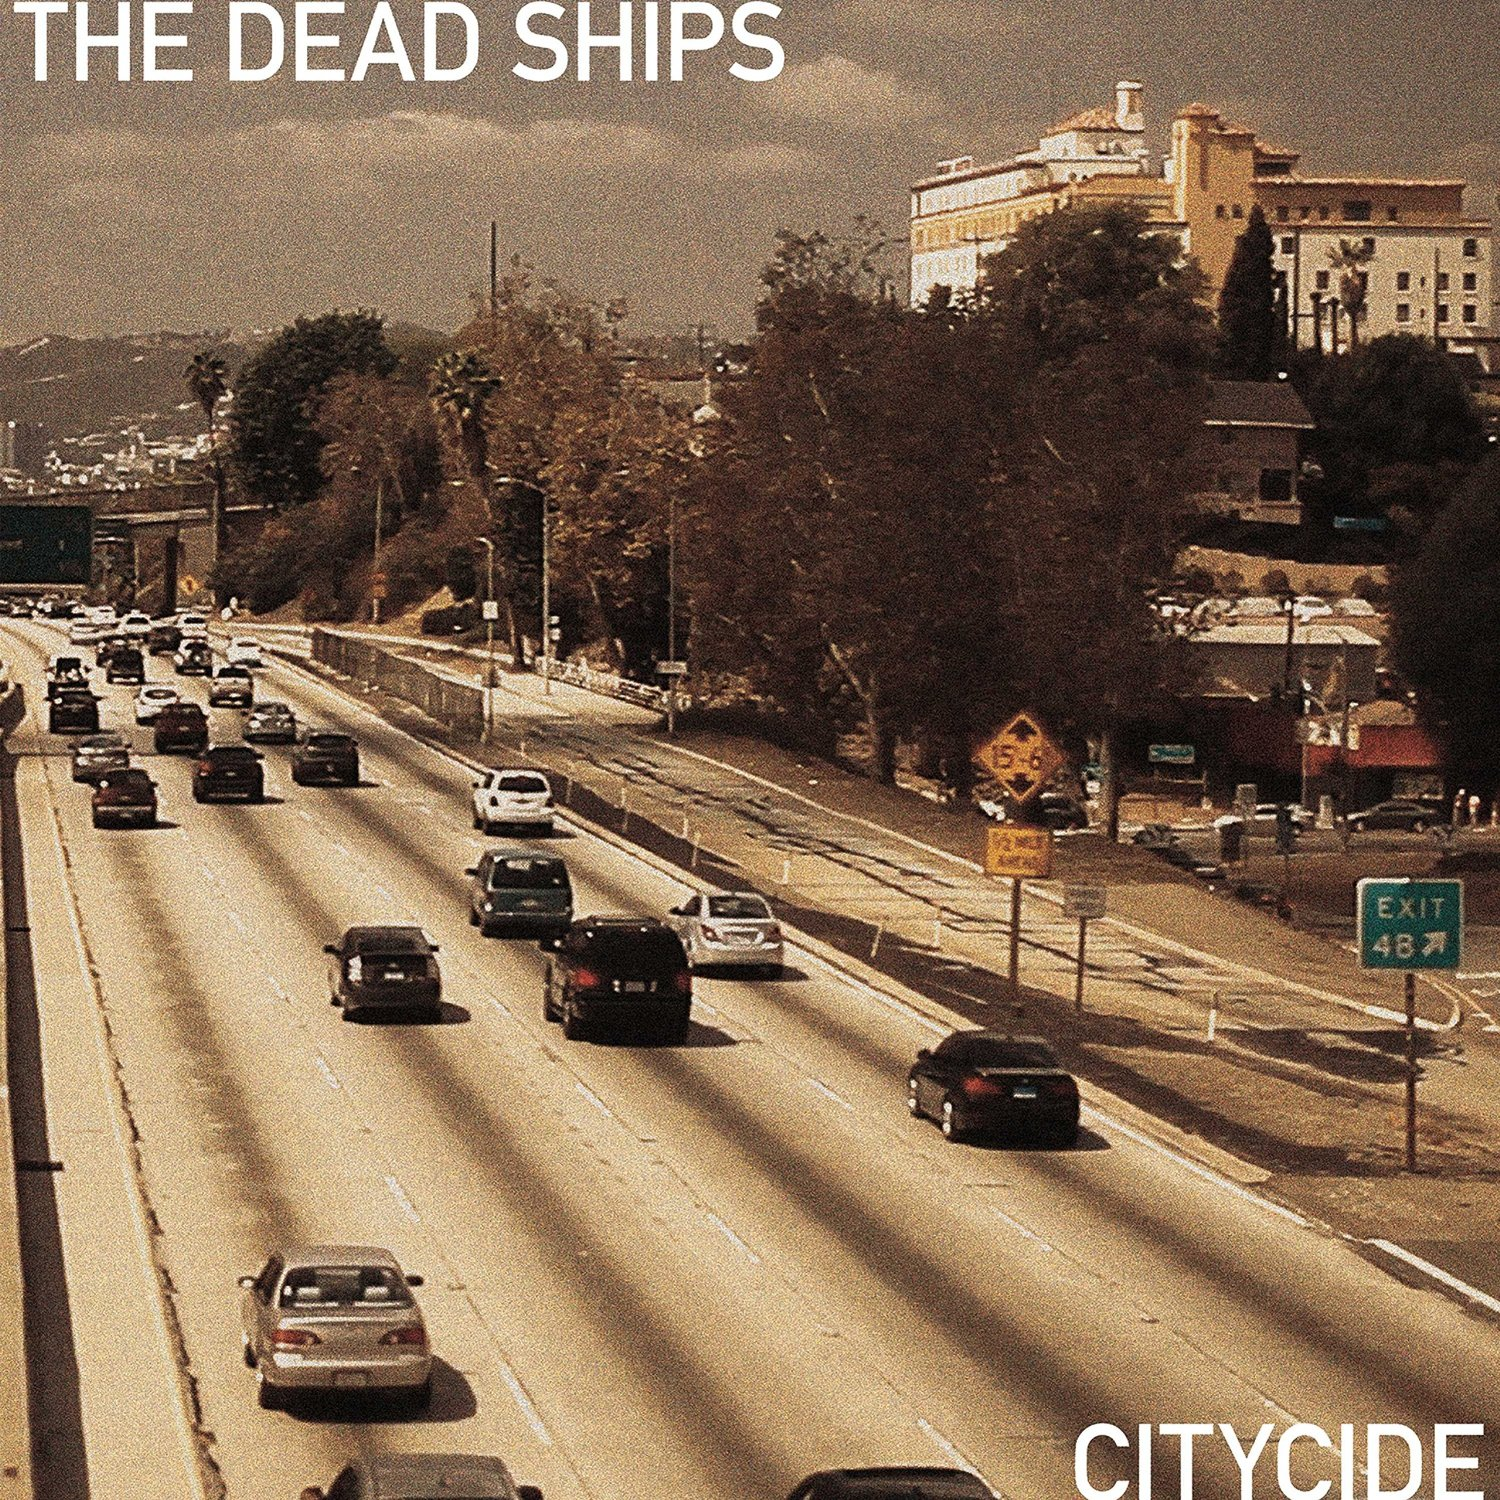 citycide Stream: The Dead Ships new album CITYCIDE